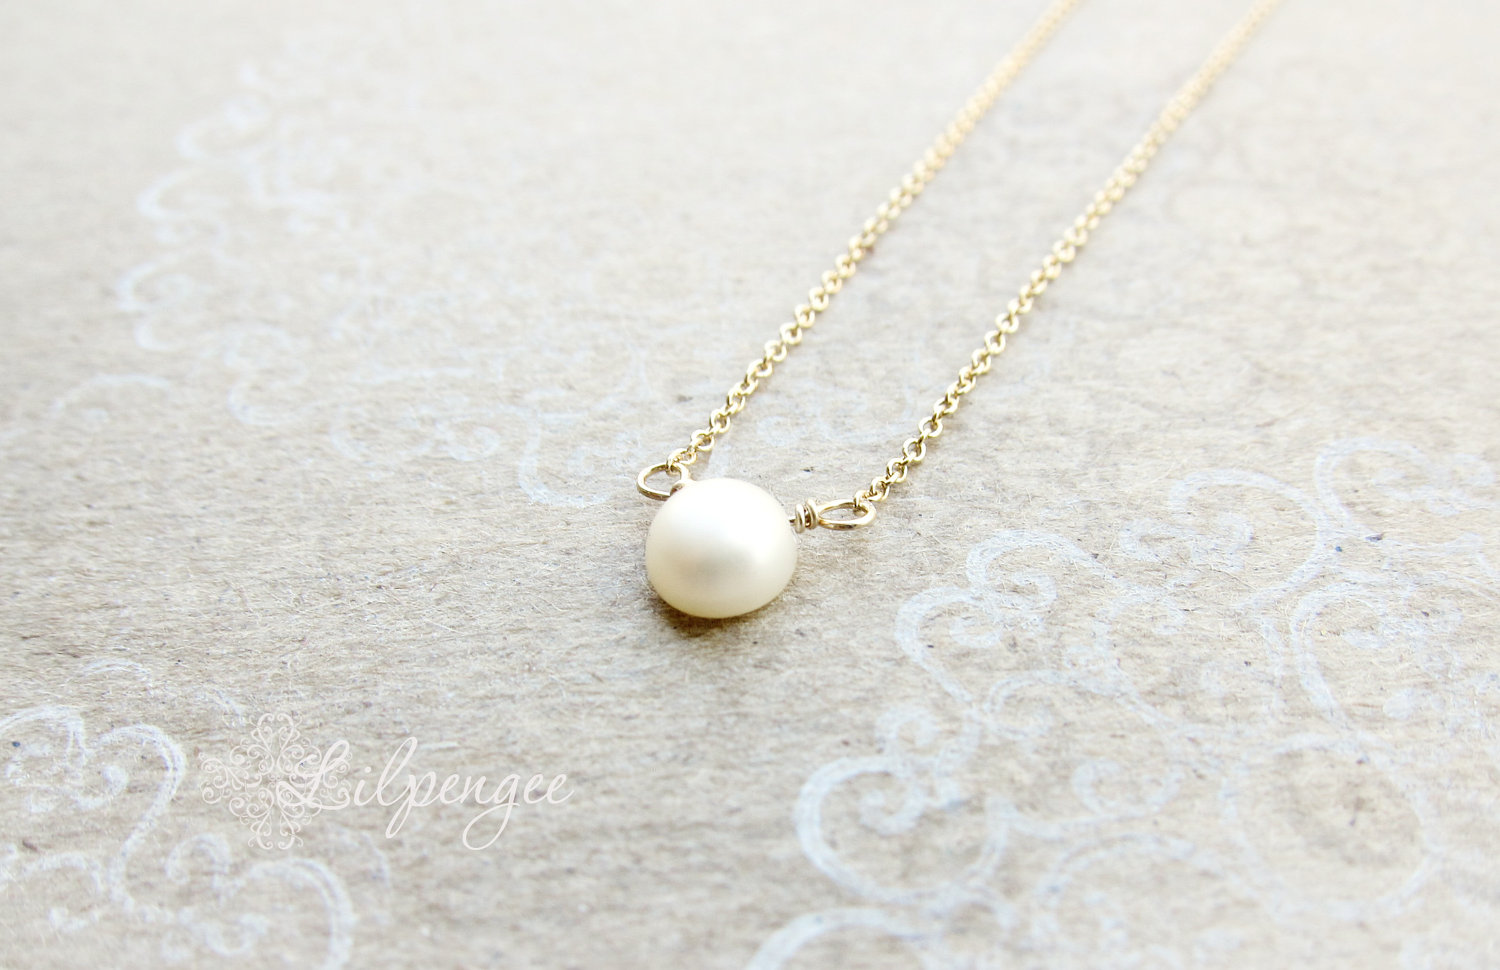 62c96072ca2cf golden too - single pearl necklace. sterling silver or gold chain from  Lilpengee Jewelry